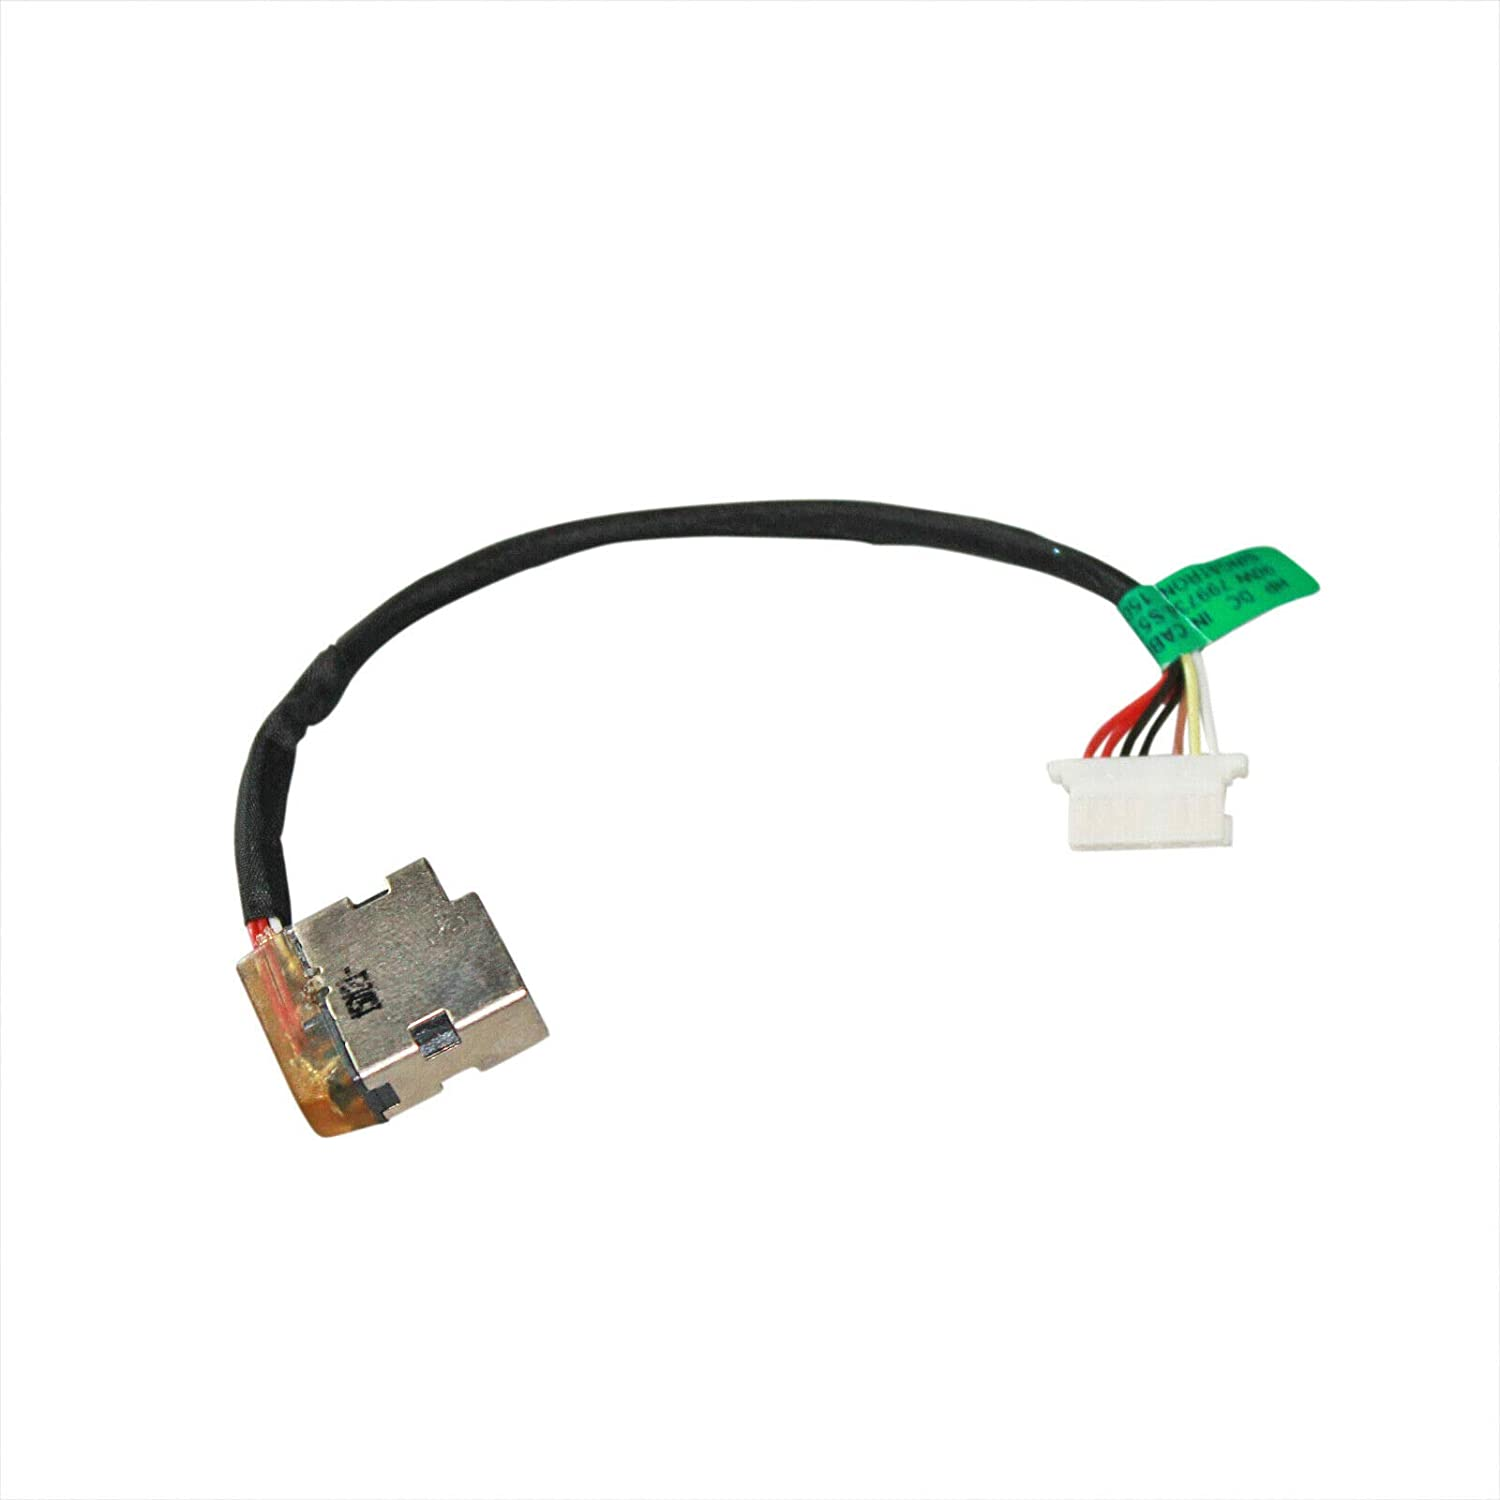 Replacement DC Power Jack Cable for HP Pavilion 15-db series, 15-db0003ax 15-db0004cy 15-db0004ds 15-db0004dx 15-db0011ds 15-db0011dx 15-db0015dx 15-db0018ca 15-db0020ca 15-db0020nr Series Laptop